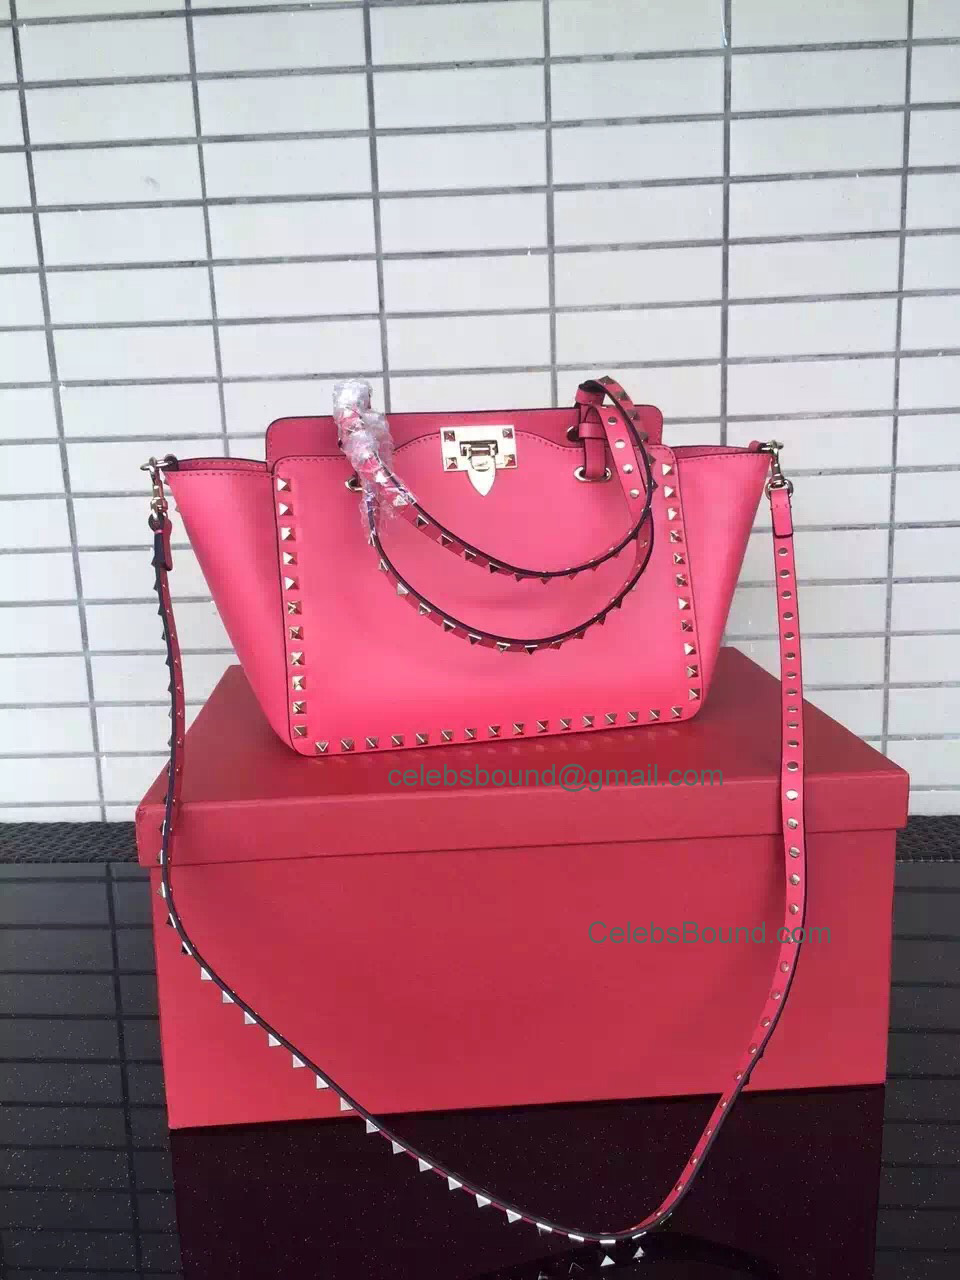 Replica Valentino Gold Rockstud Small Tote in Rose Pink Smooth Calfskin